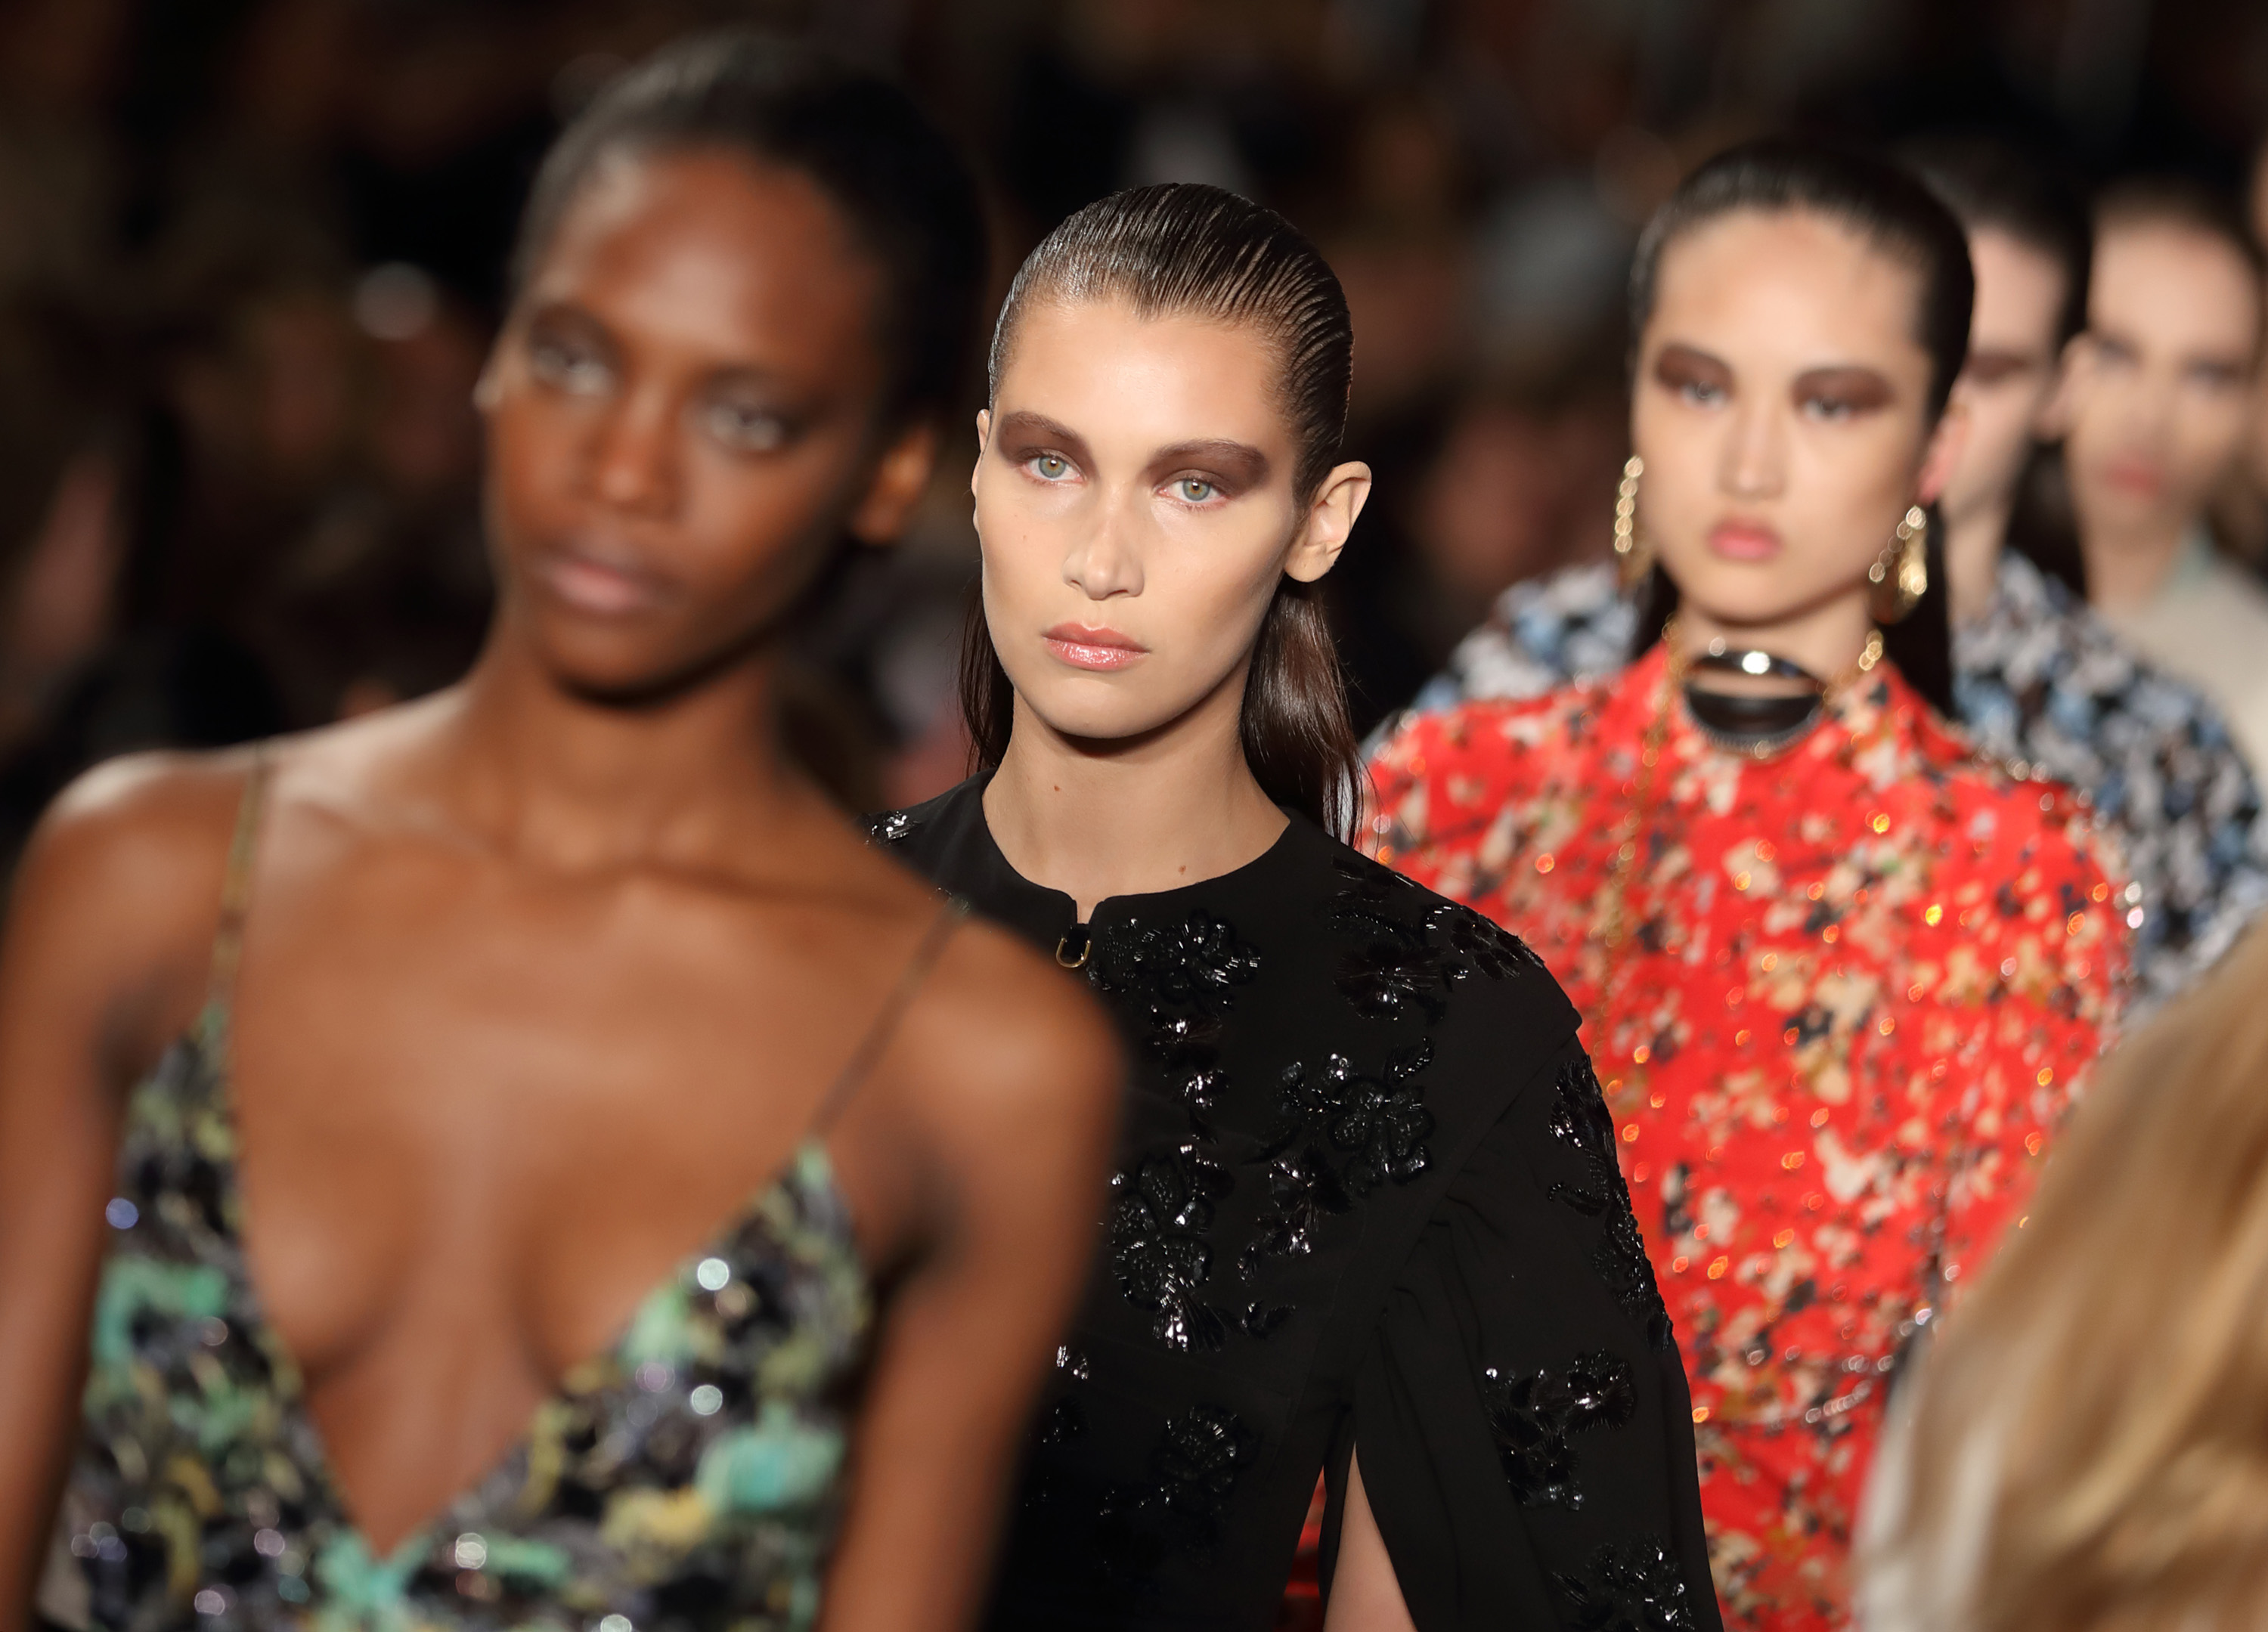 <p>Still without a head designer, Dior - stewarded by Swiss designers Lucie Neier and Serge Ruffieux - delivered a collection that merged French refinement and English eccentricity. Blenheim Palace in Oxfordshire provided a complementary backdrop and gave a nod to the history of the luxury house, while Bella Hadid - with boyfriend The Weeknd watching on from the front row - provided the requisite star power. </p> <p>Click through to see all the looks.</p>